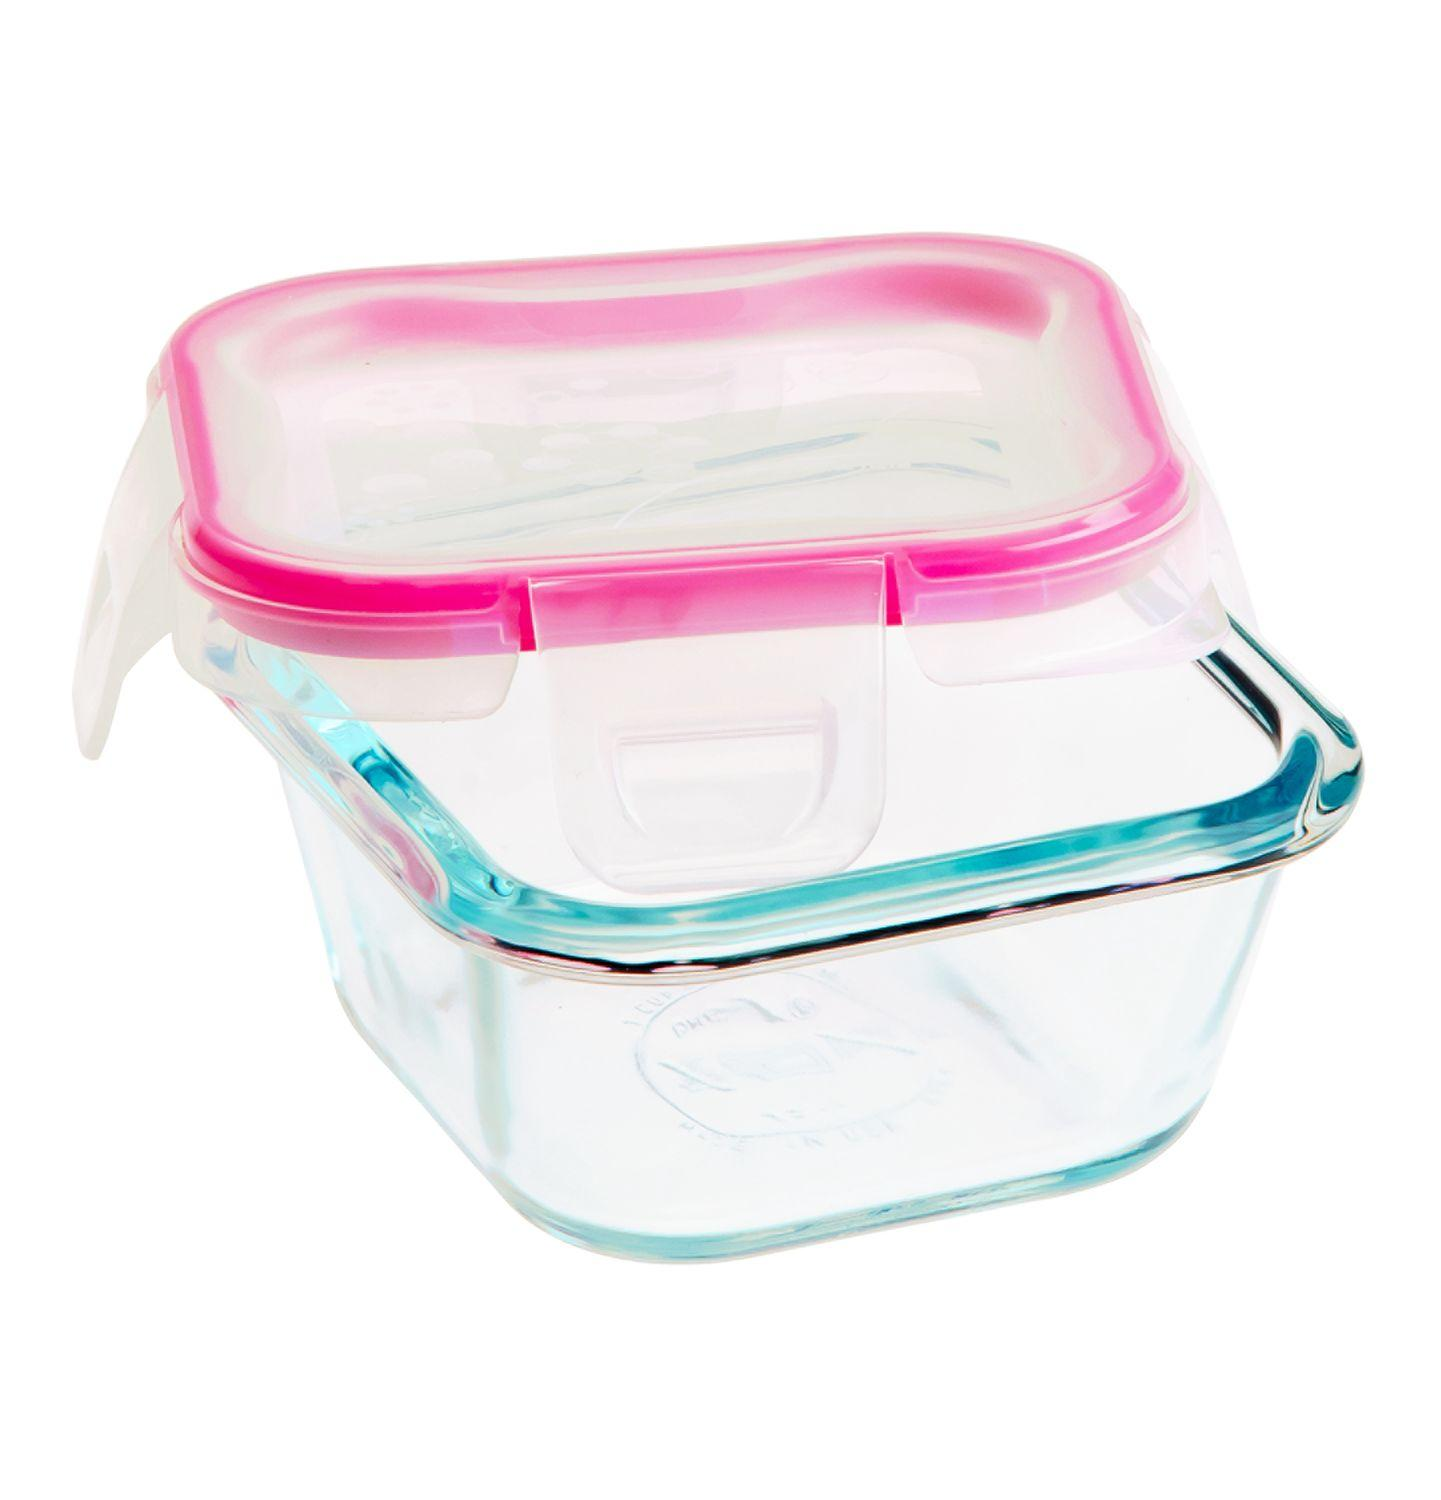 Amazoncom Snapware 1109328 6 Piece Glass Square Container Set with